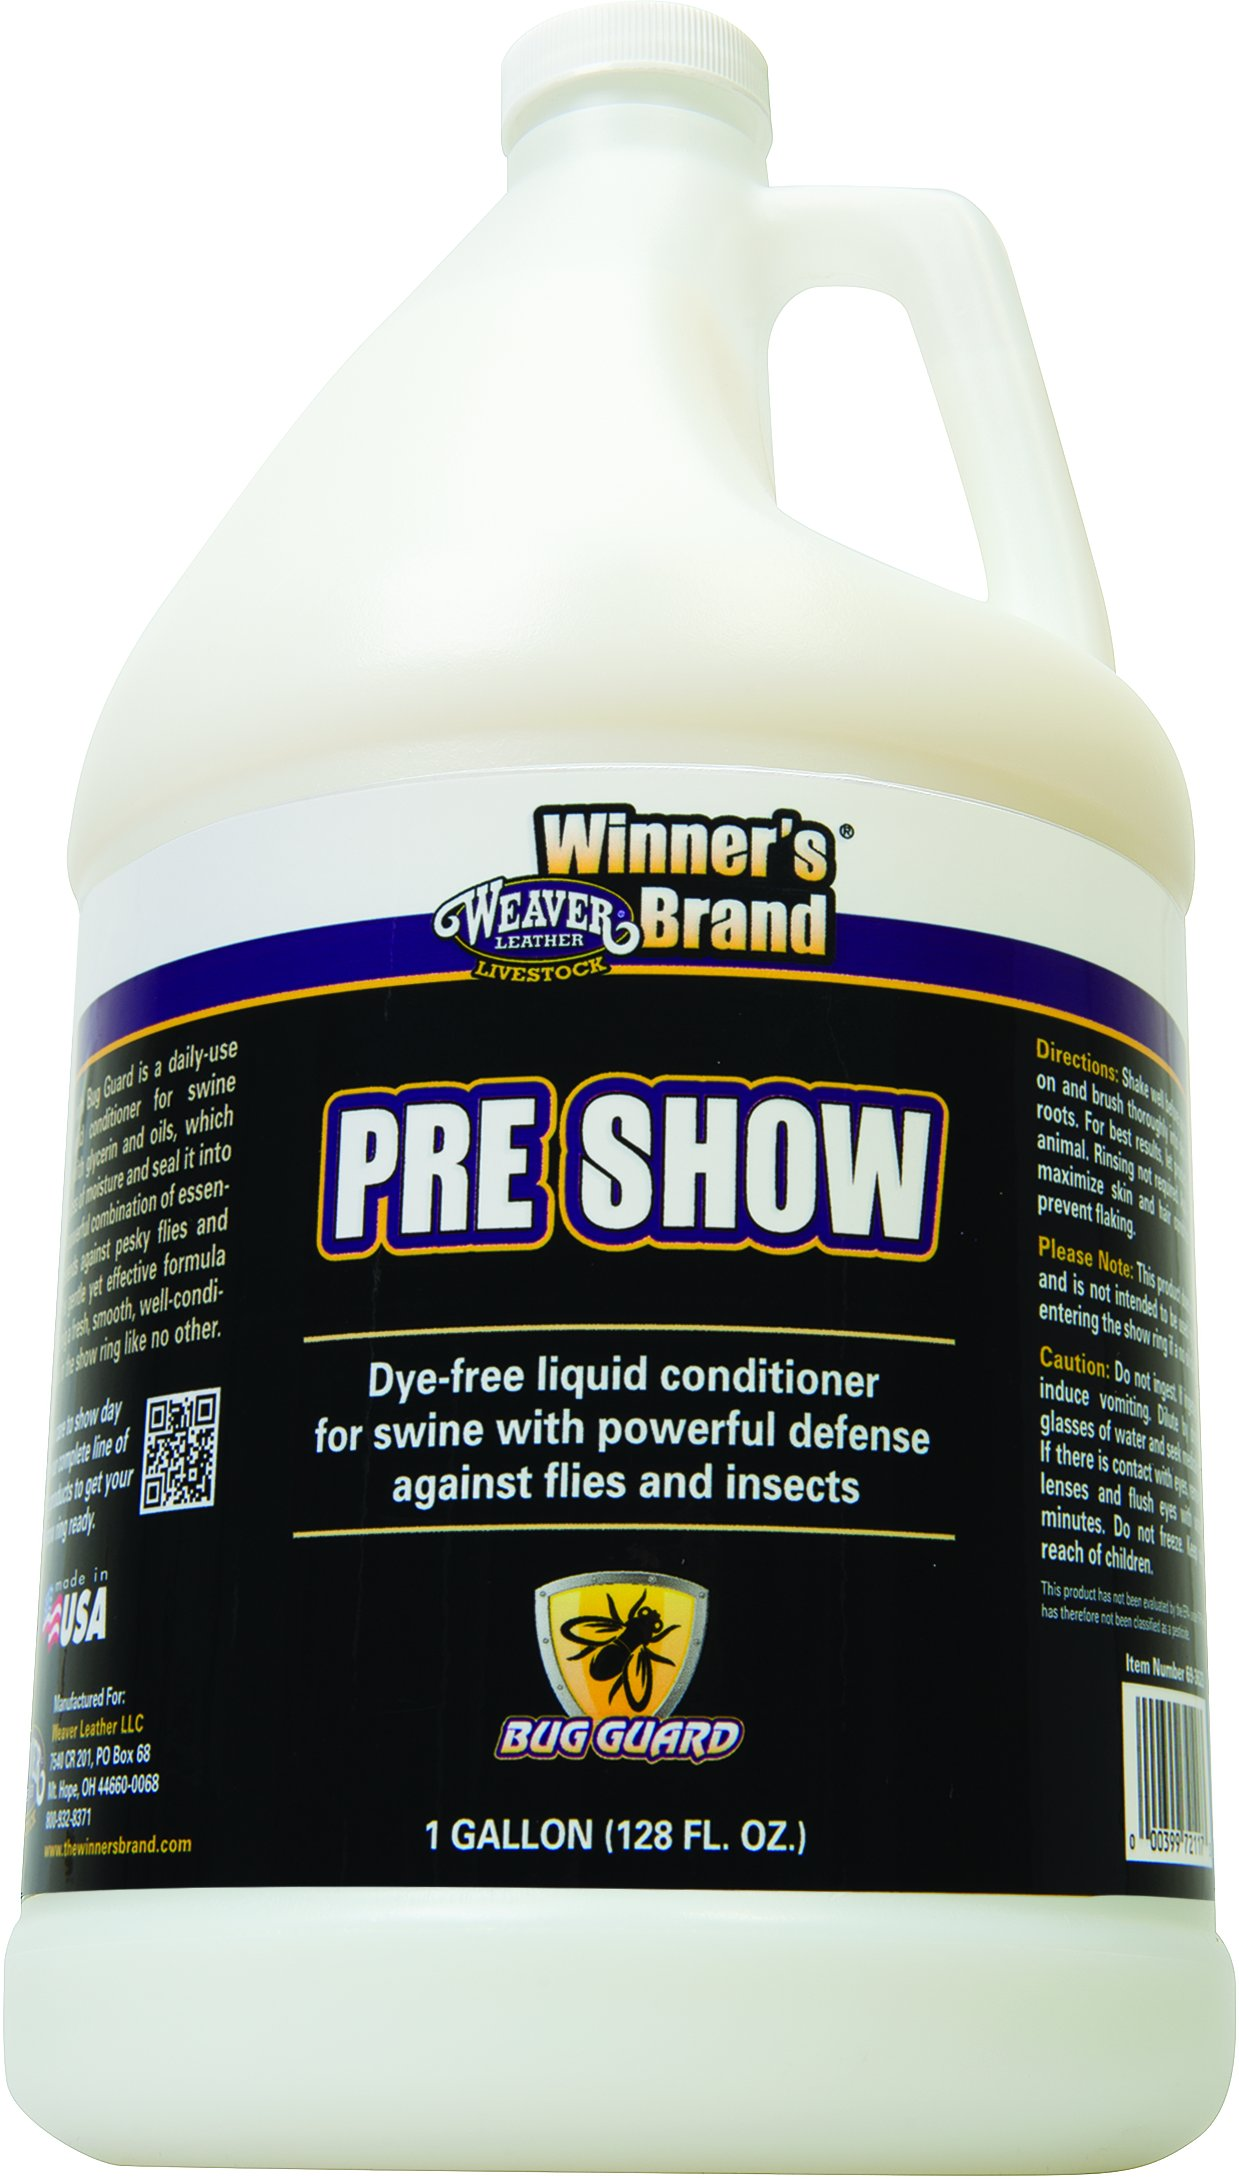 Weaver Leather Livestock Pre Show with Bug Guard by Weaver Leather